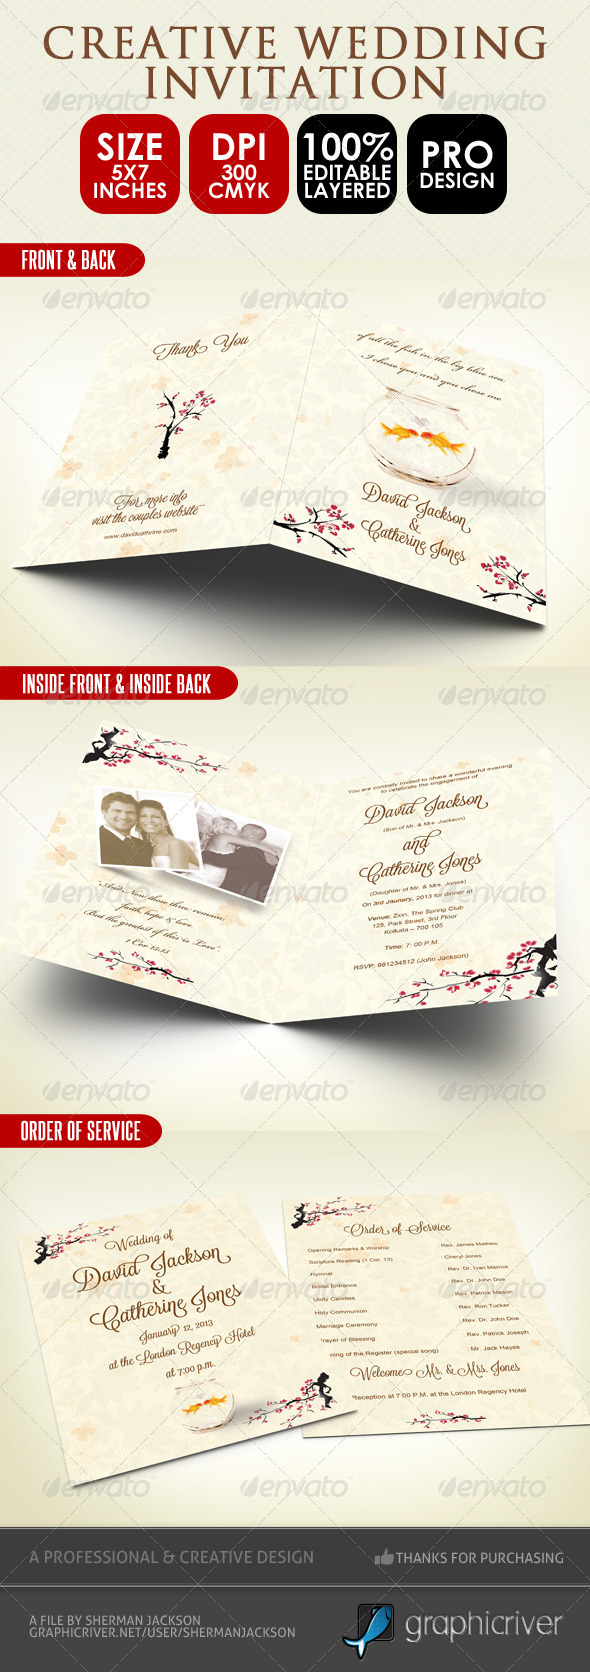 Creative Wedding Card & Order of Service PSD - Weddings Cards & Invites